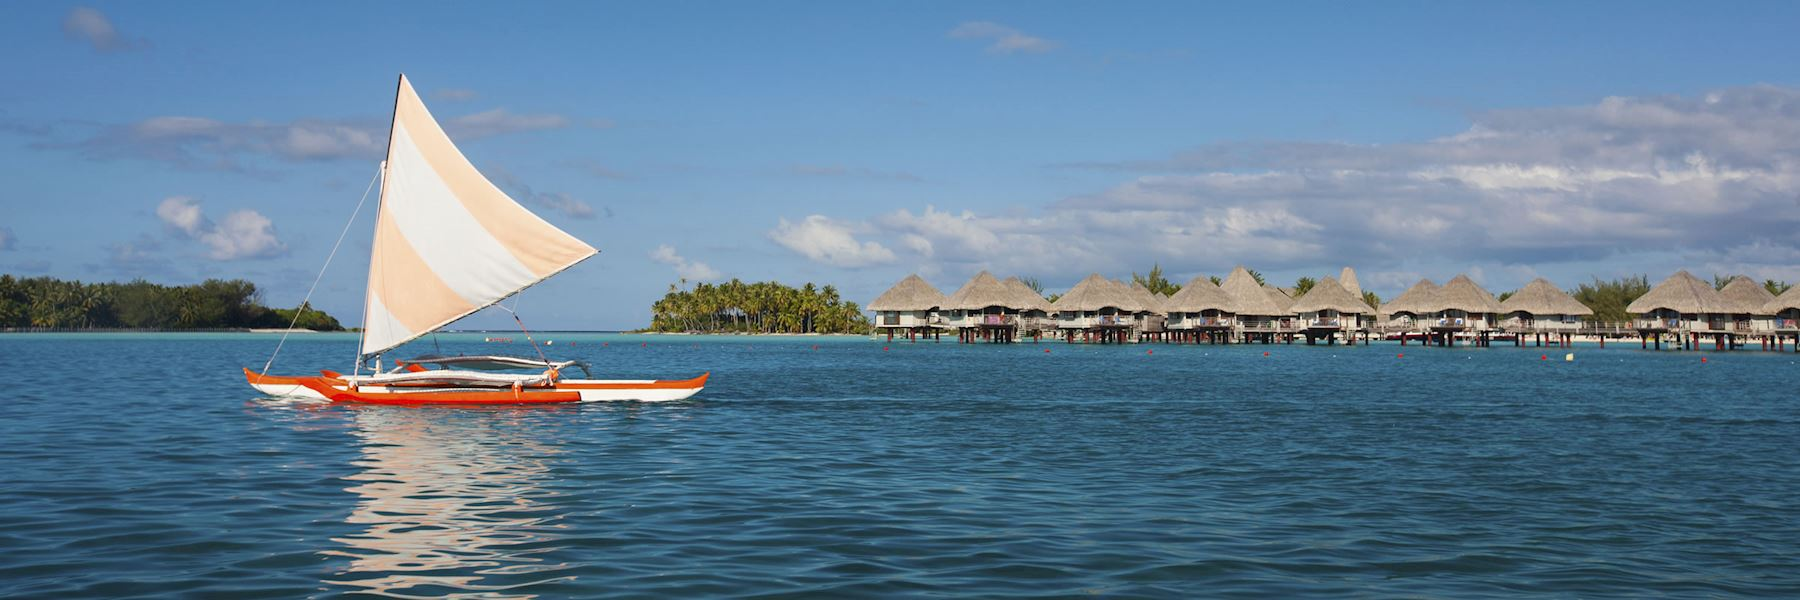 Things to do in French Polynesia